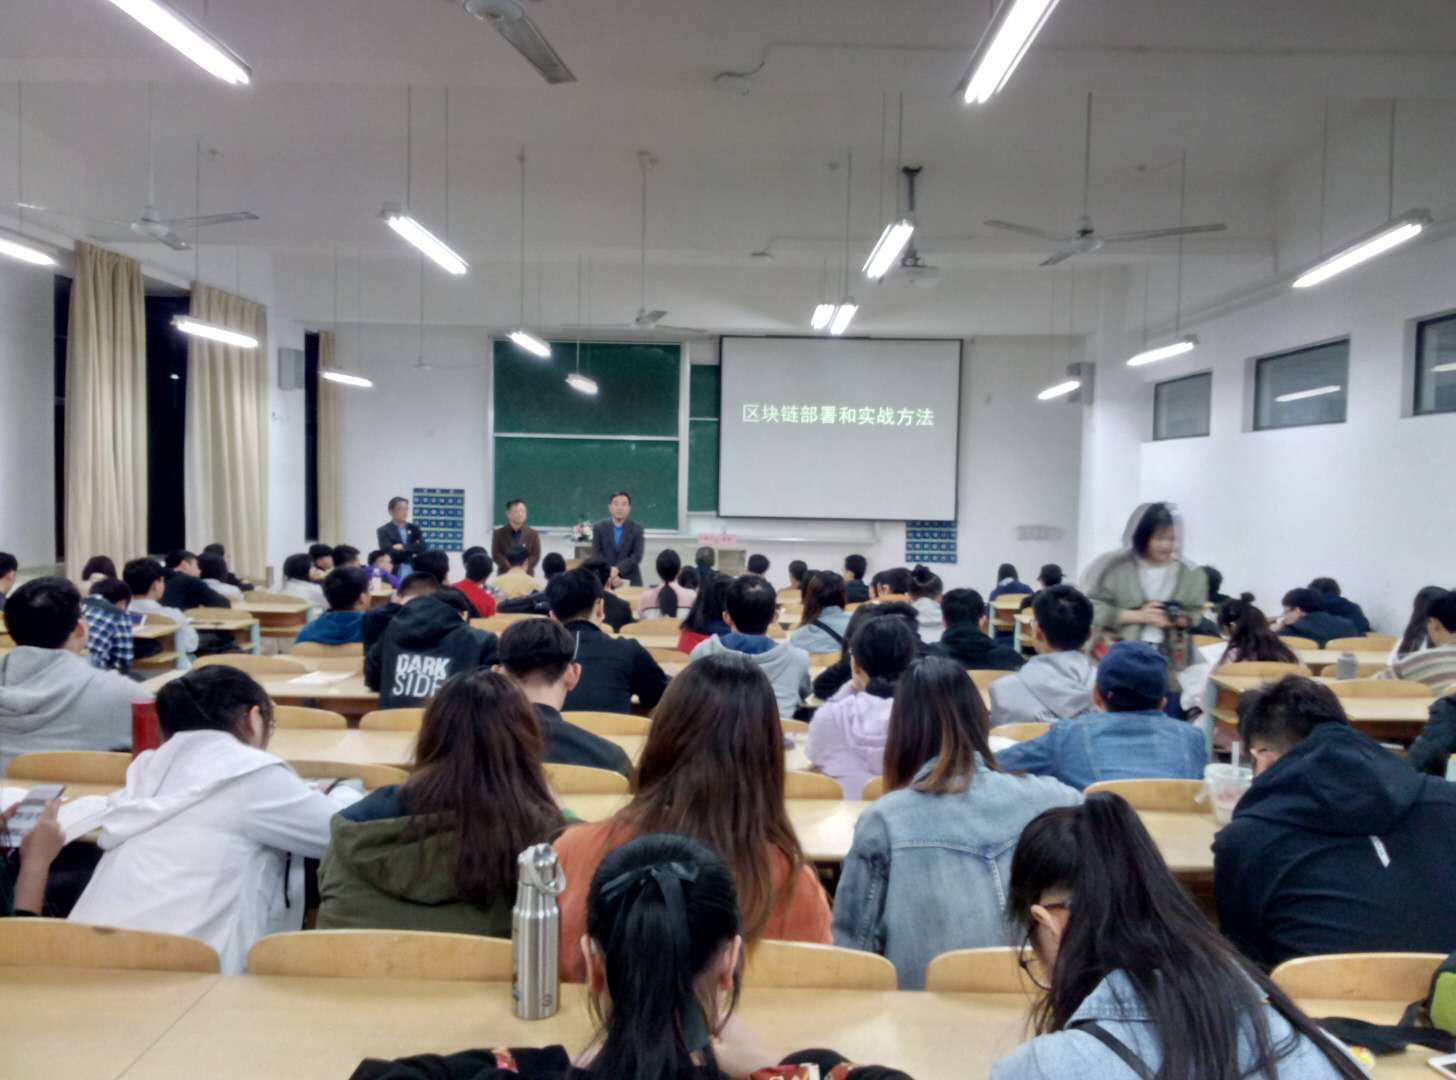 Dr. Peter Zhang and Dr. Ming Yang gave lecture on Blockchain in Shanghai Applied Technology University, Shanghai, China